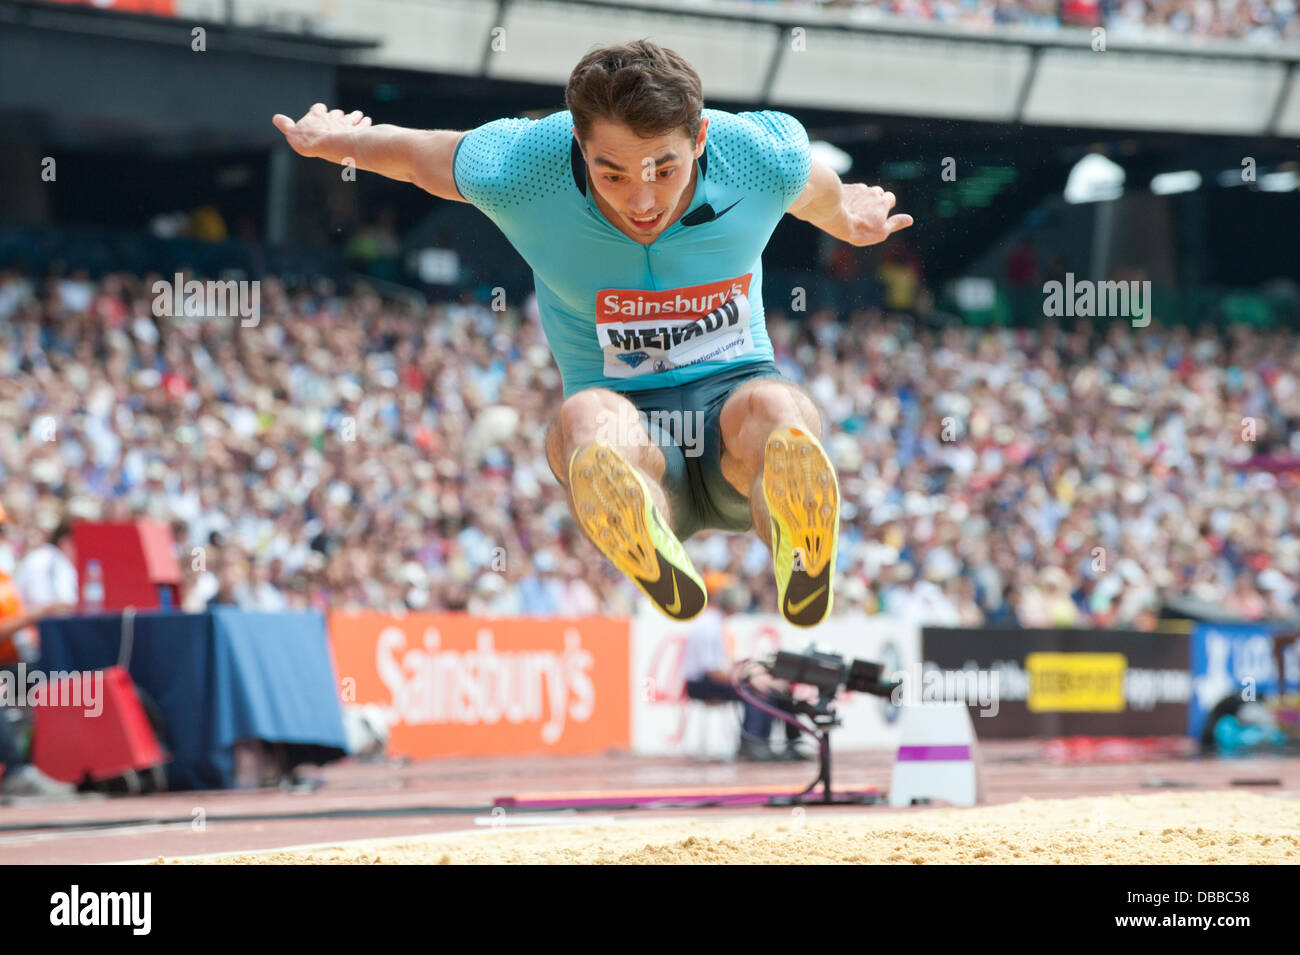 LONDON, UK. Saturday 27th July 2013. Aleksandr Meknov of Russia wins first place in the Men's Long jump of the - Stock Image